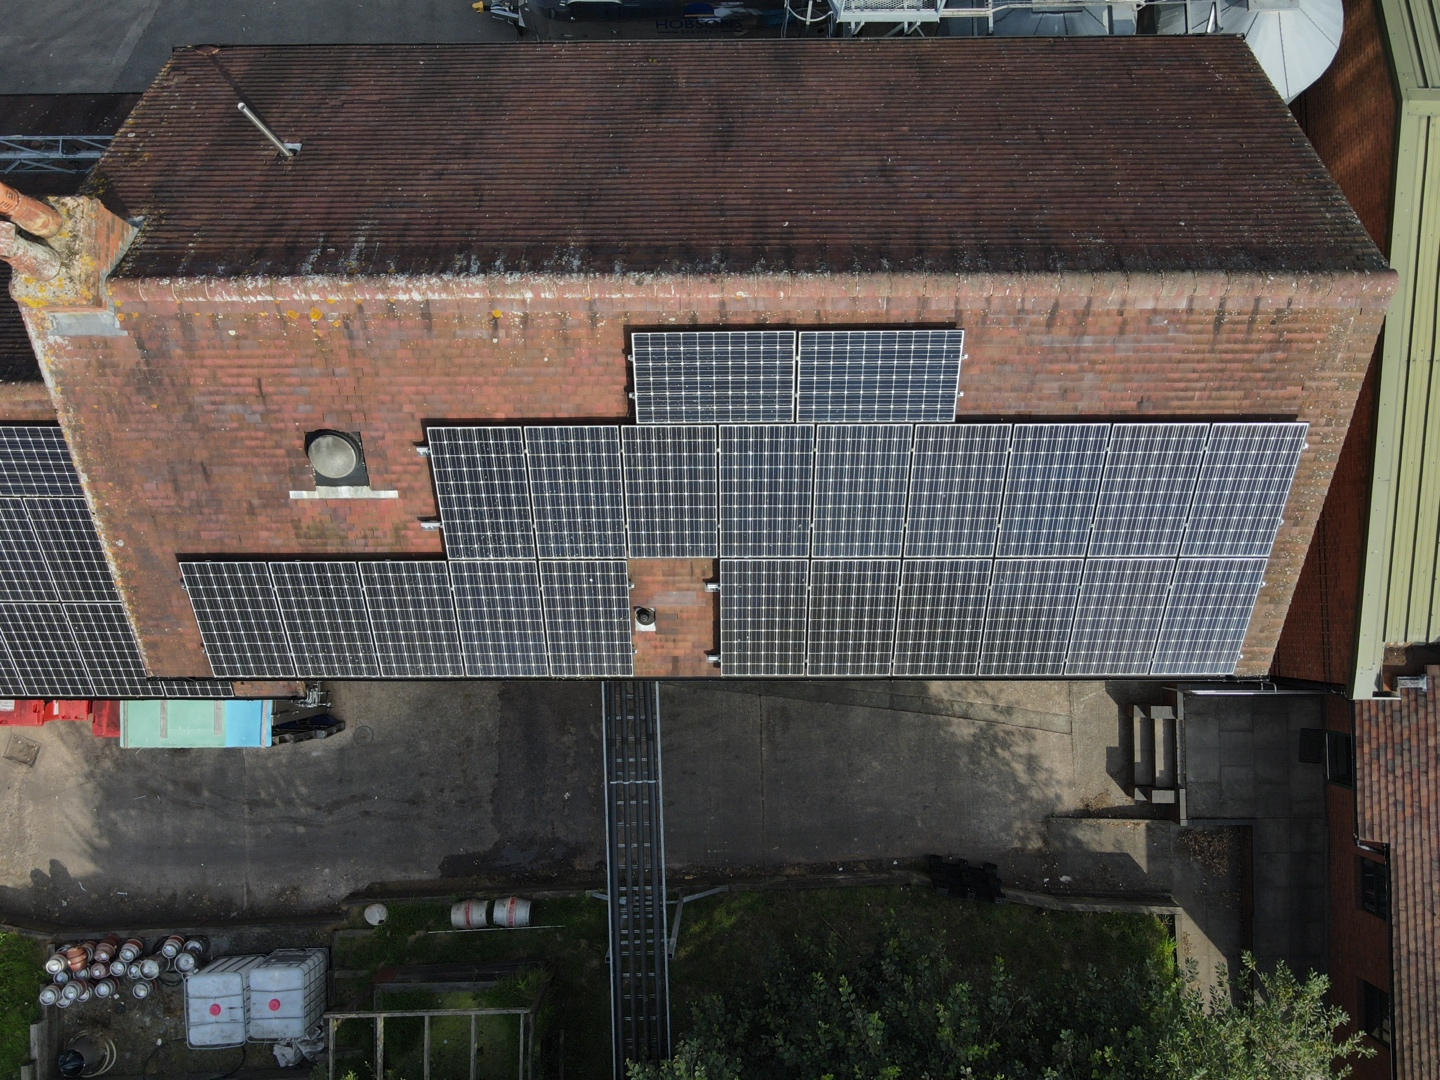 solar panel thermal survey hobsons brewery 0